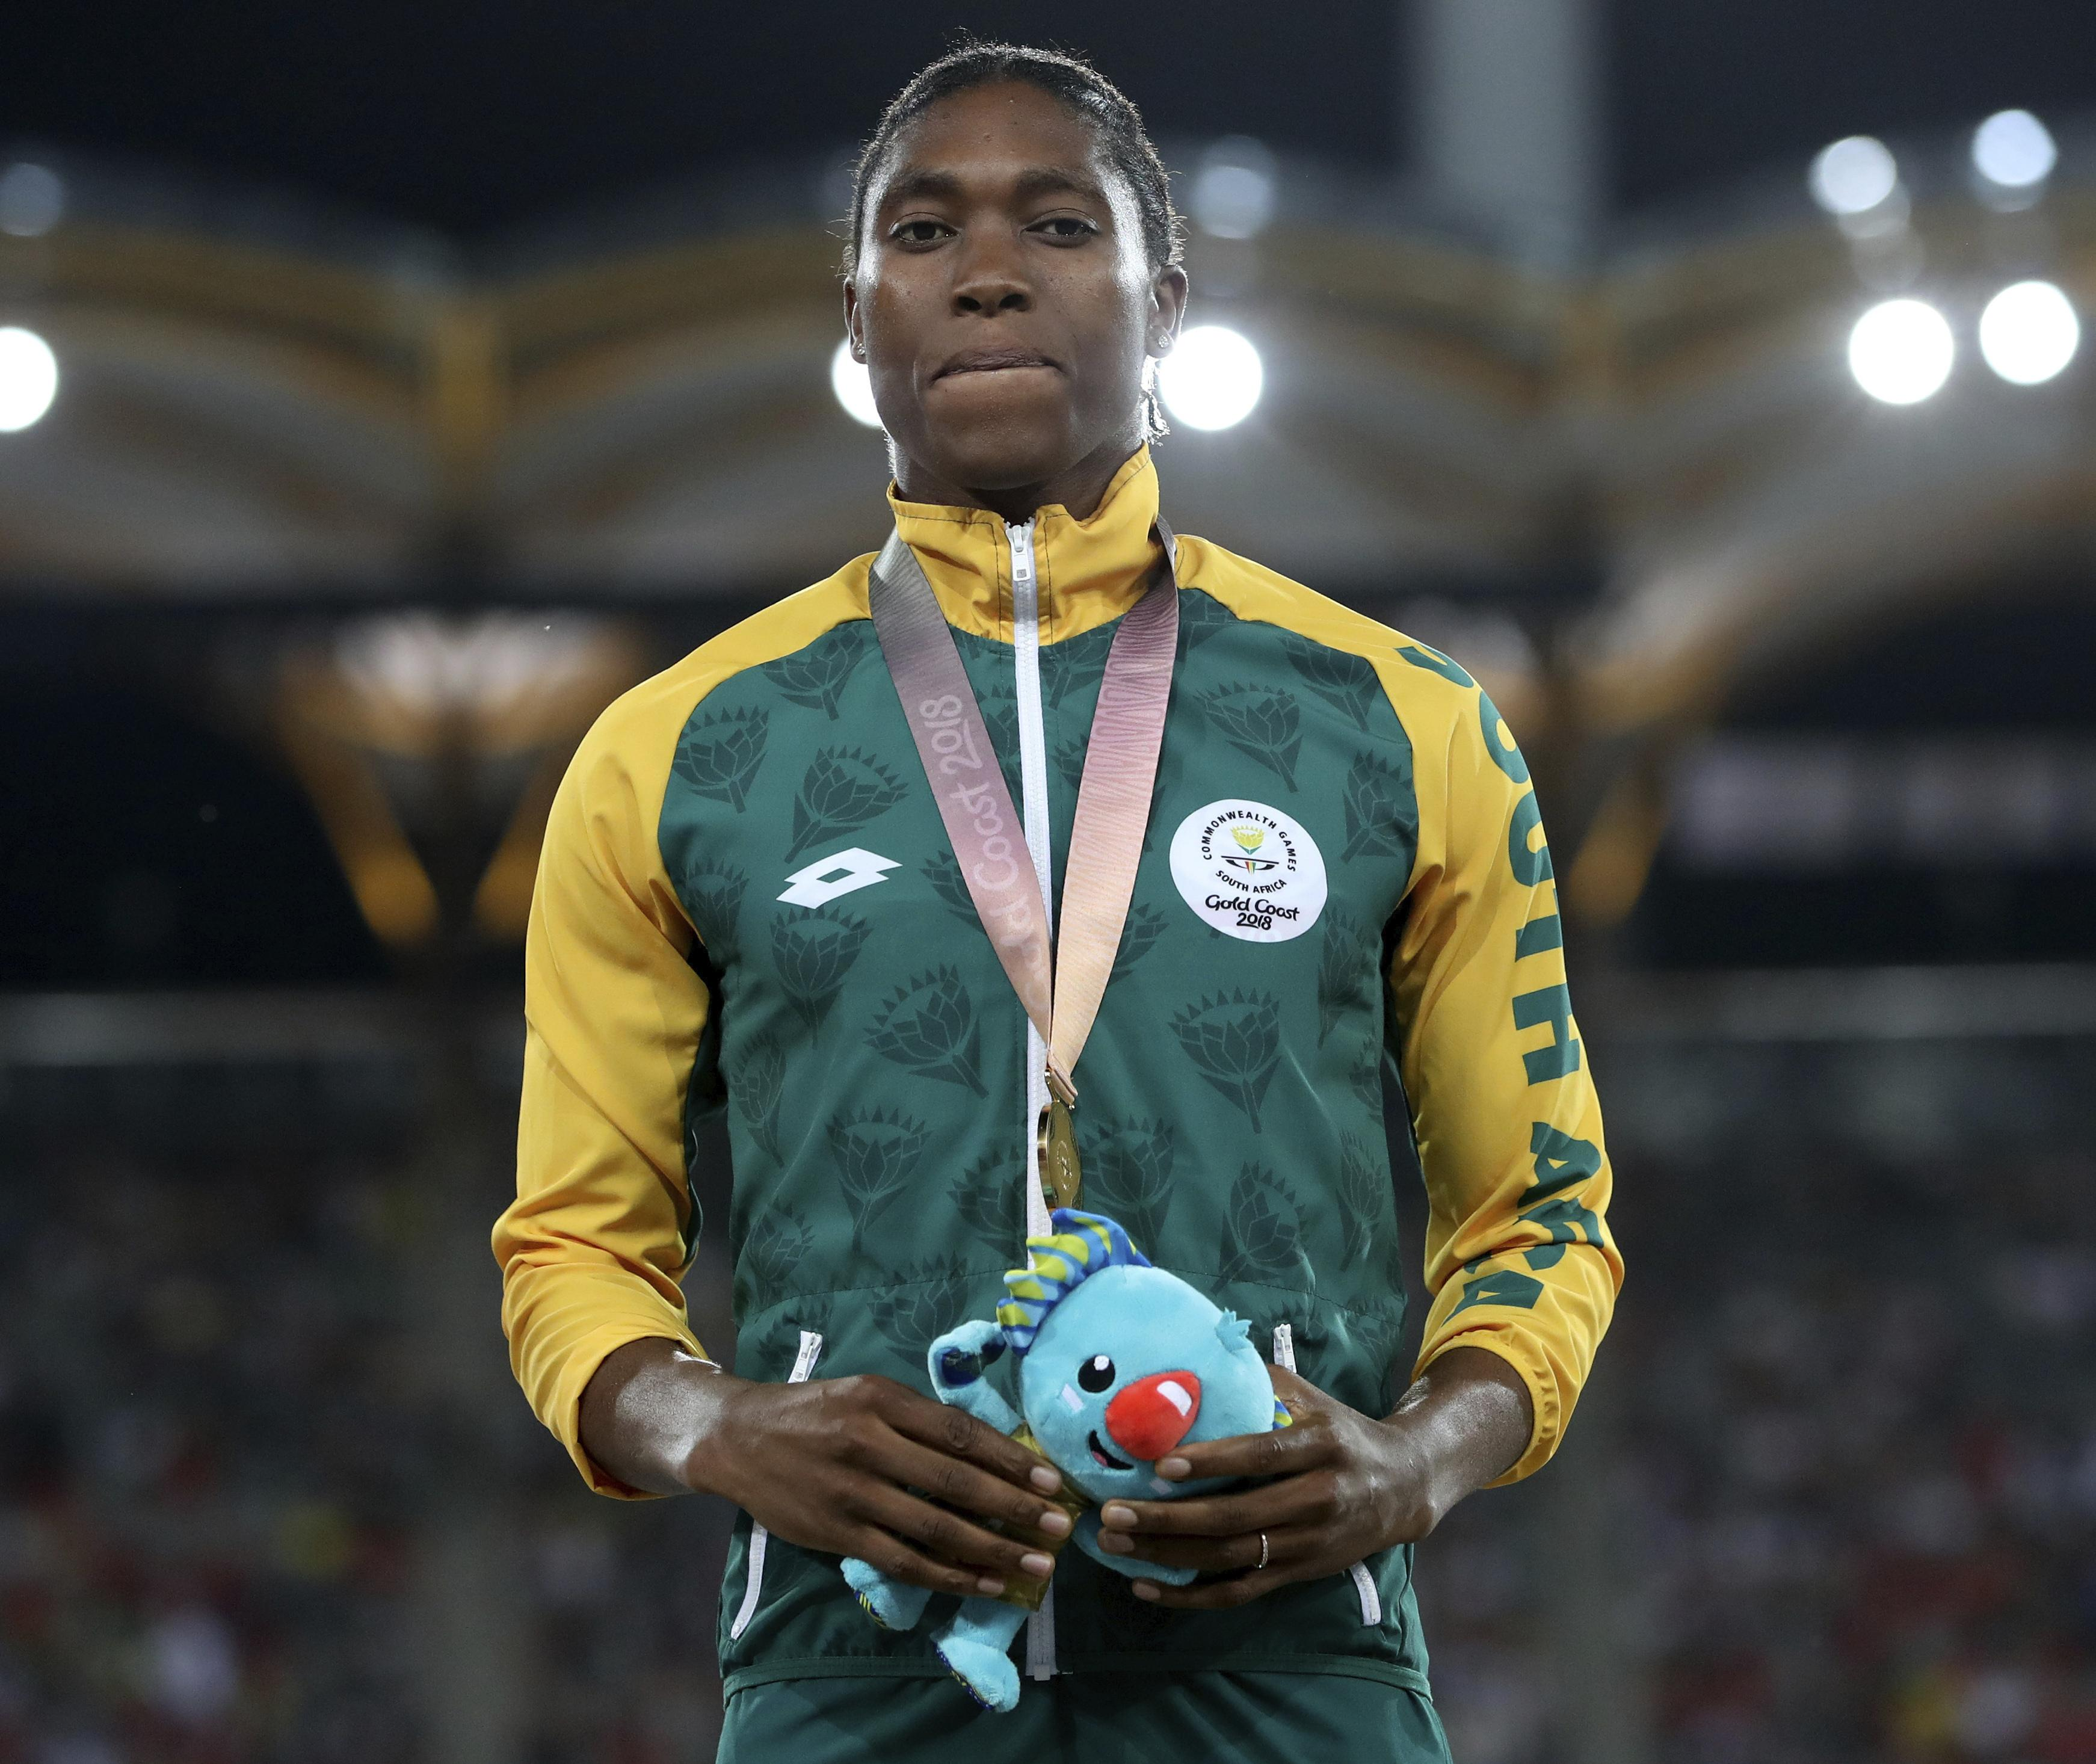 Caster Semenya will need to reduce her testosterone levels to compete as a female